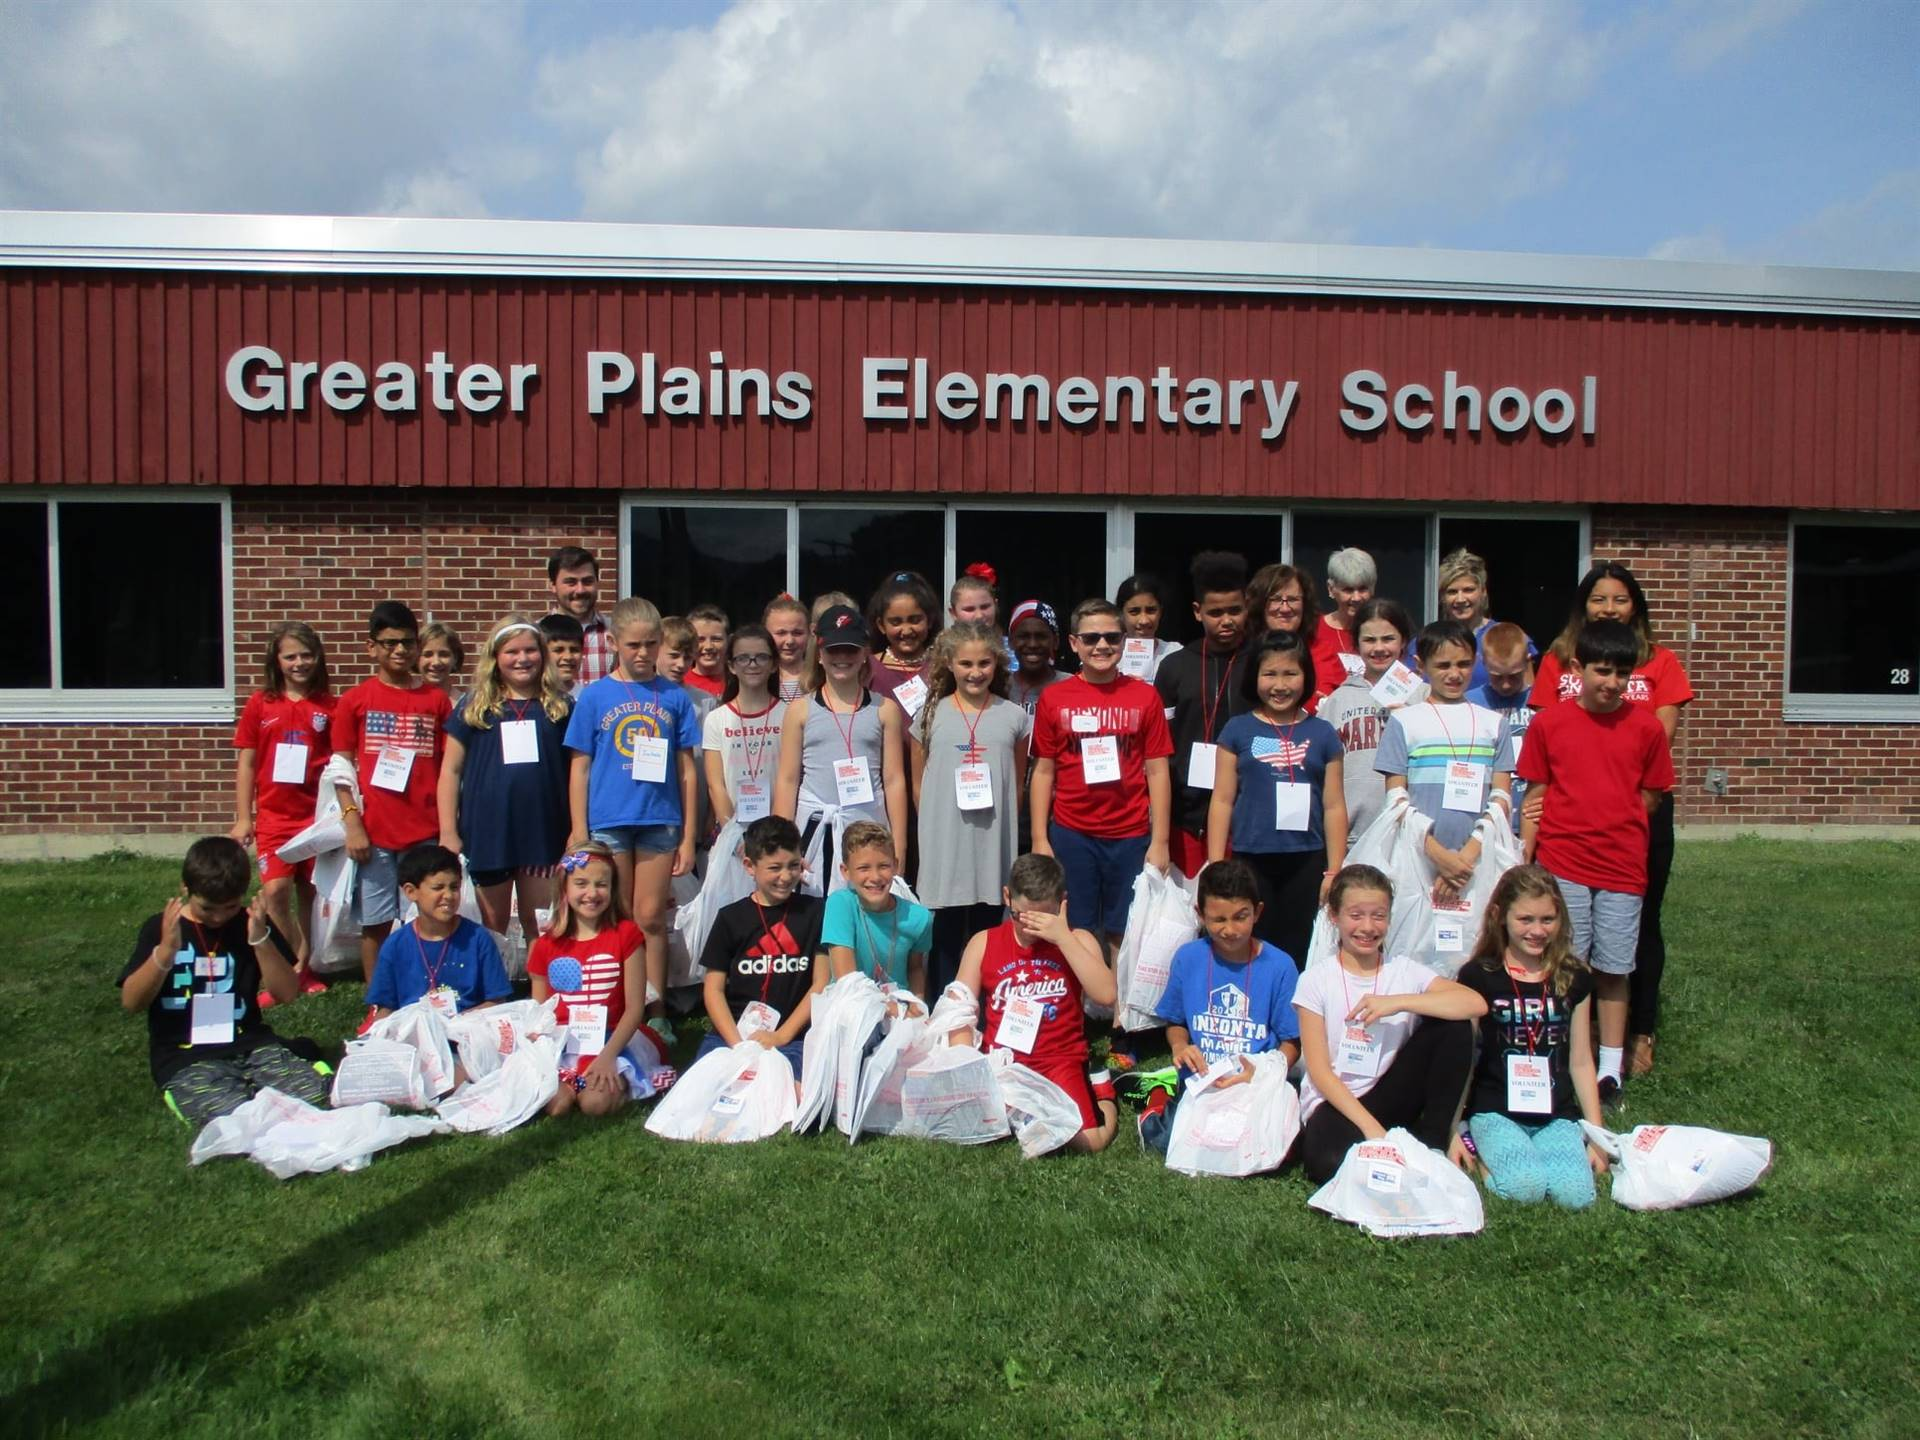 5th graders deliver cookies to first responders in honor of 9/11